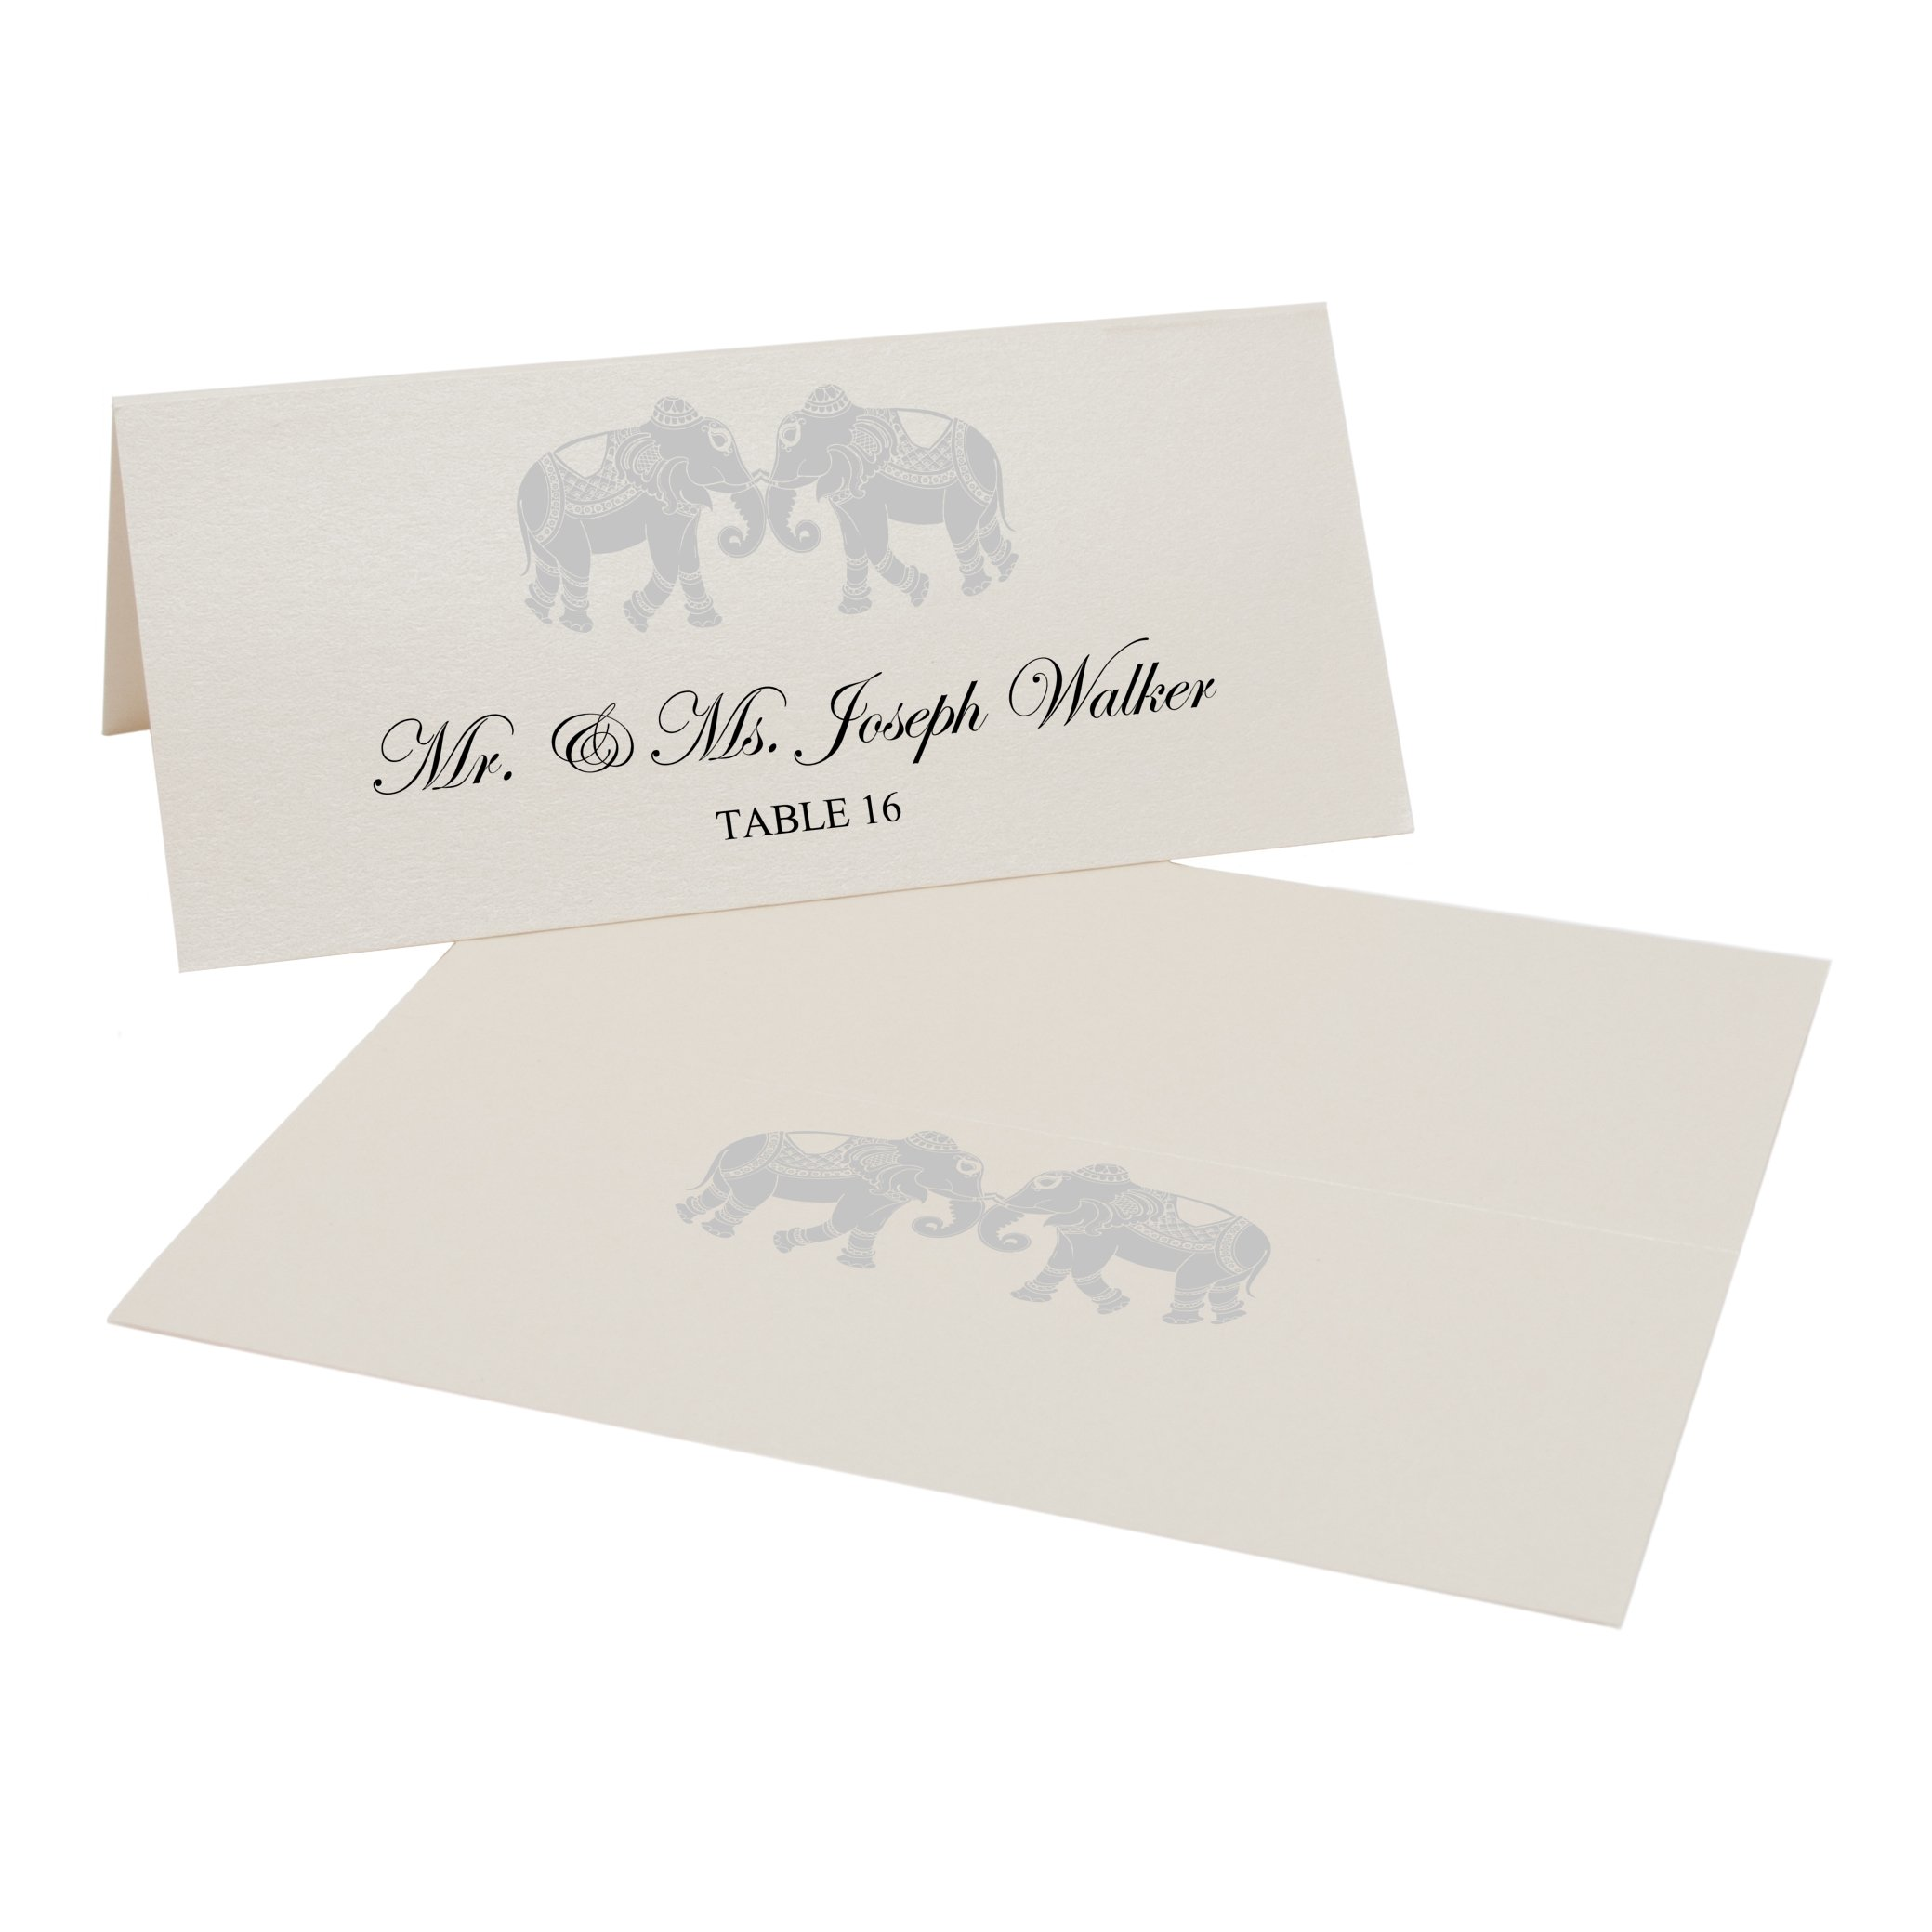 Indian Elephants Easy Print Place Cards, Champagne, Silver, Set of 300 (75 Sheets) by Documents and Designs